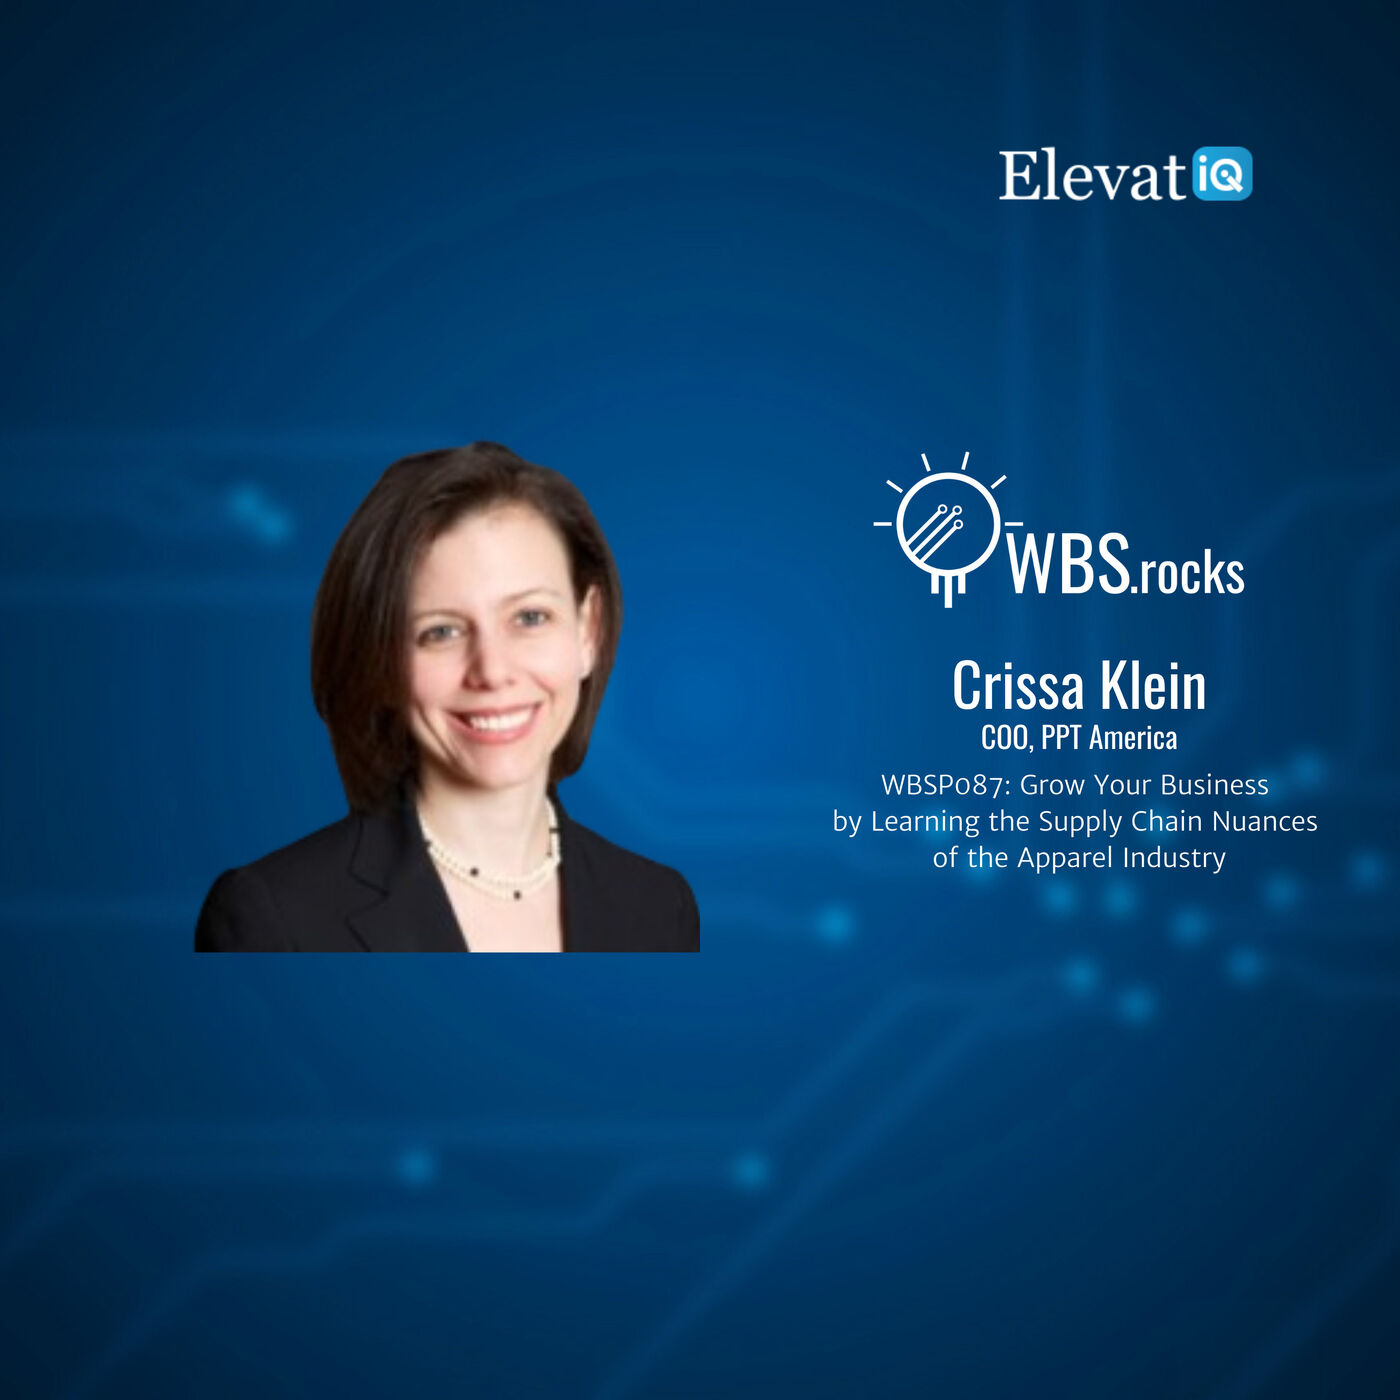 WBSP087: Grow Your Business by Learning the Supply Chain Nuances of the Apparel Industry w/ Crissa Klein